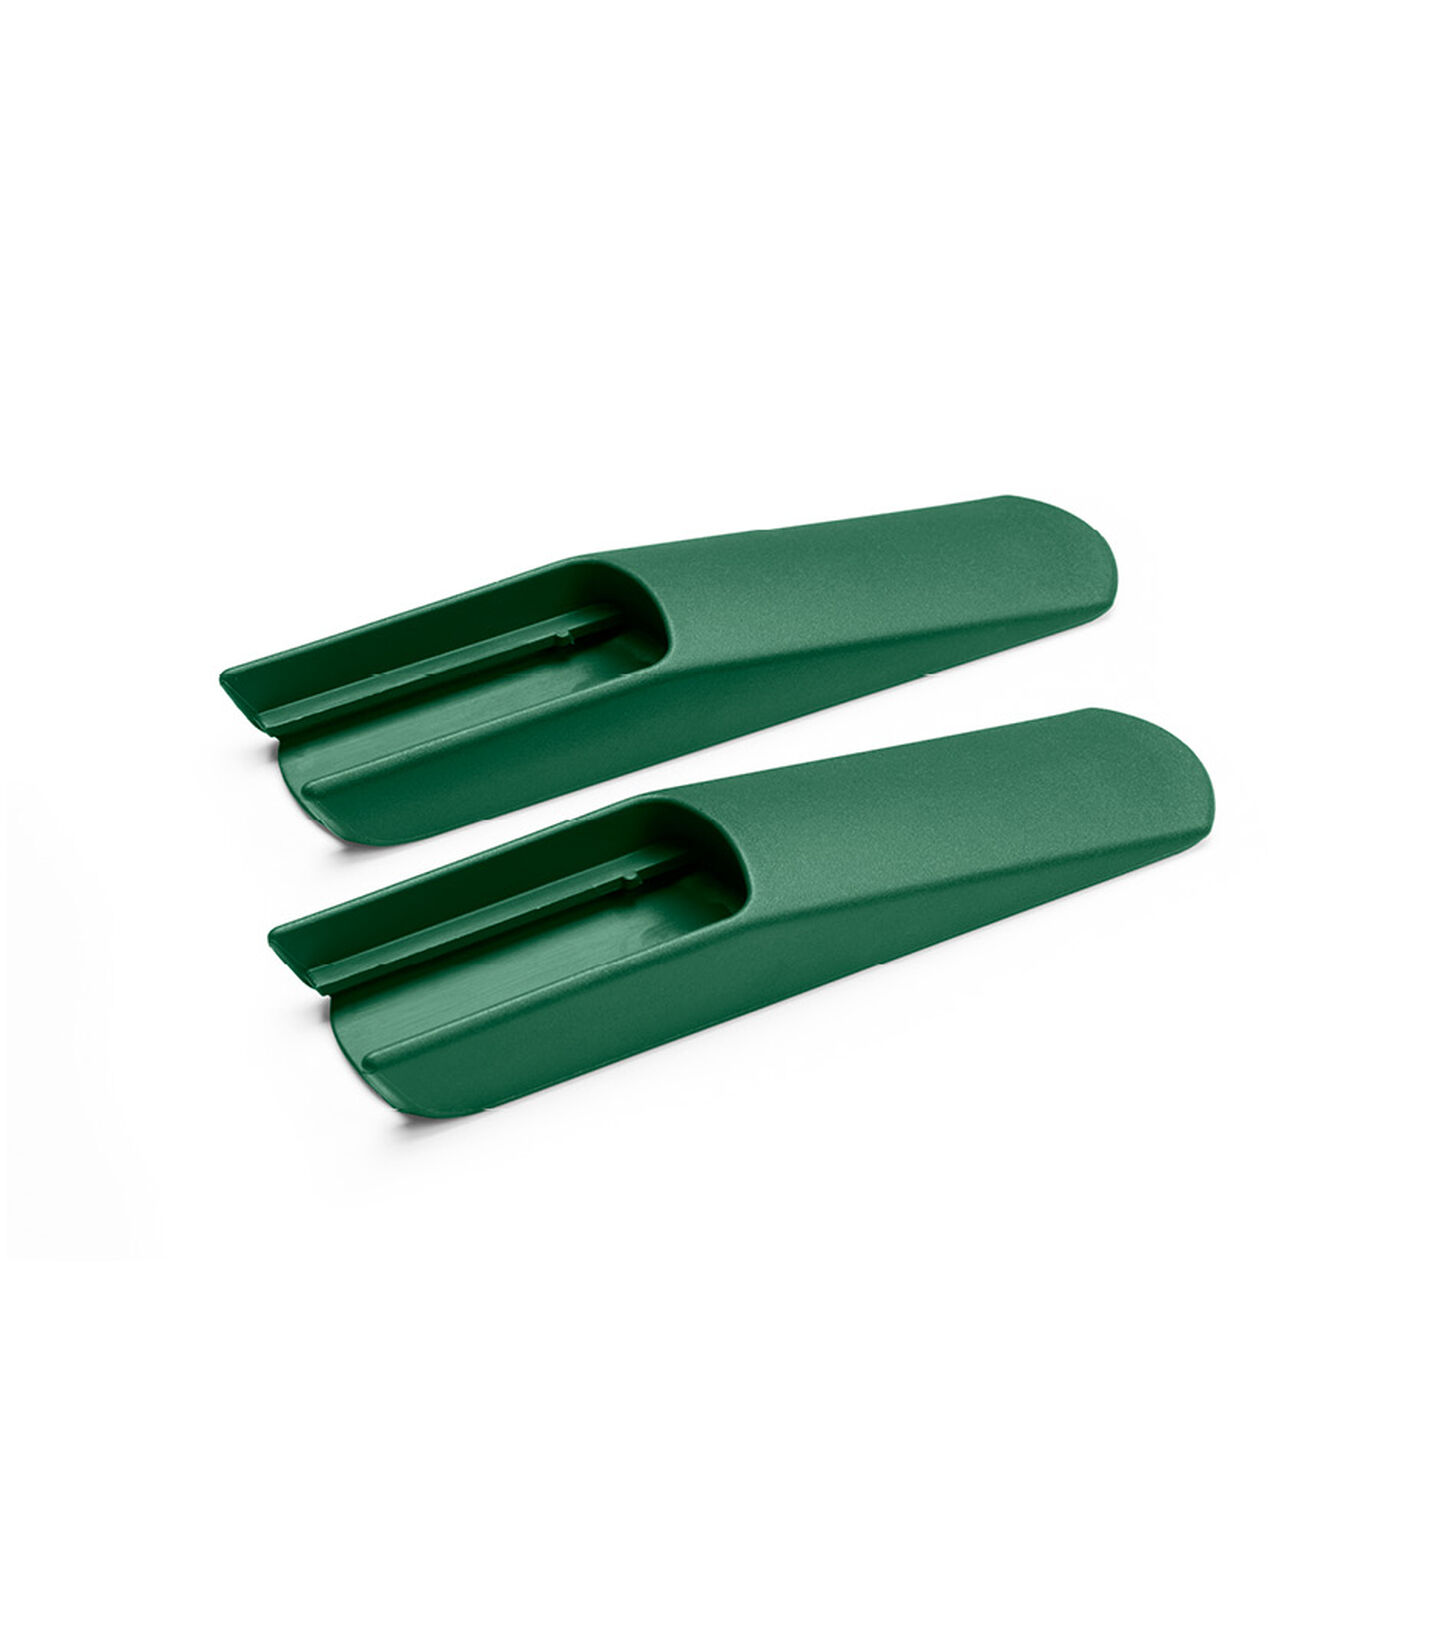 Tripp Trapp® Extended Glider V3, Forest Green. view 2